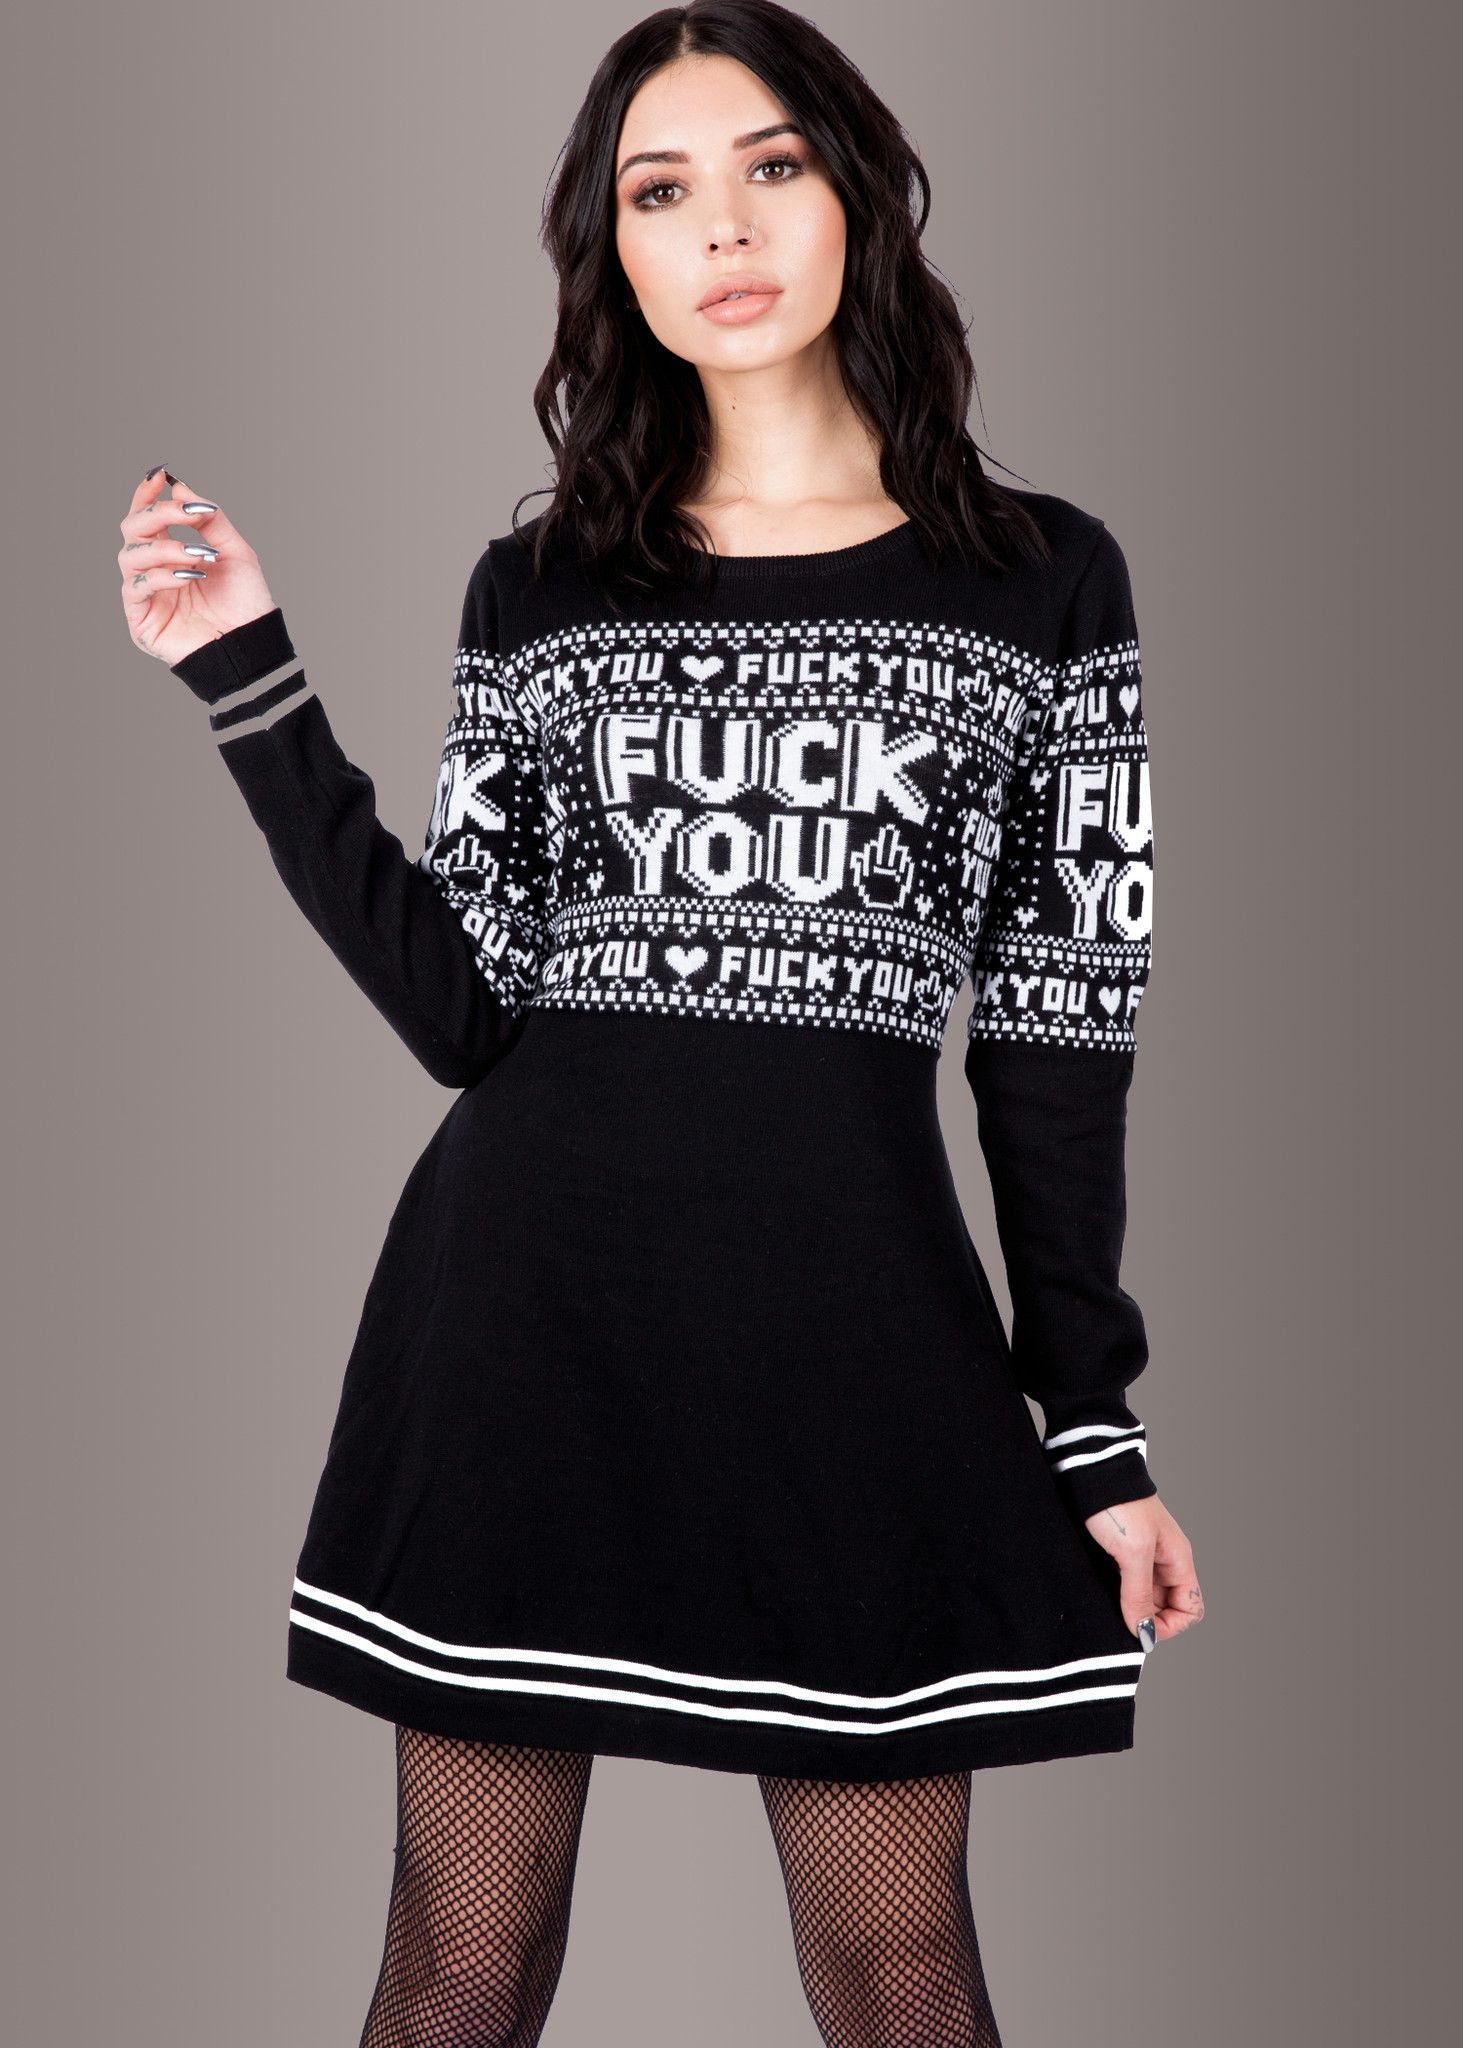 cf5562f08cbf0d Sourpuss F You Skull Sweater Dress - I would actually wear this haha ...